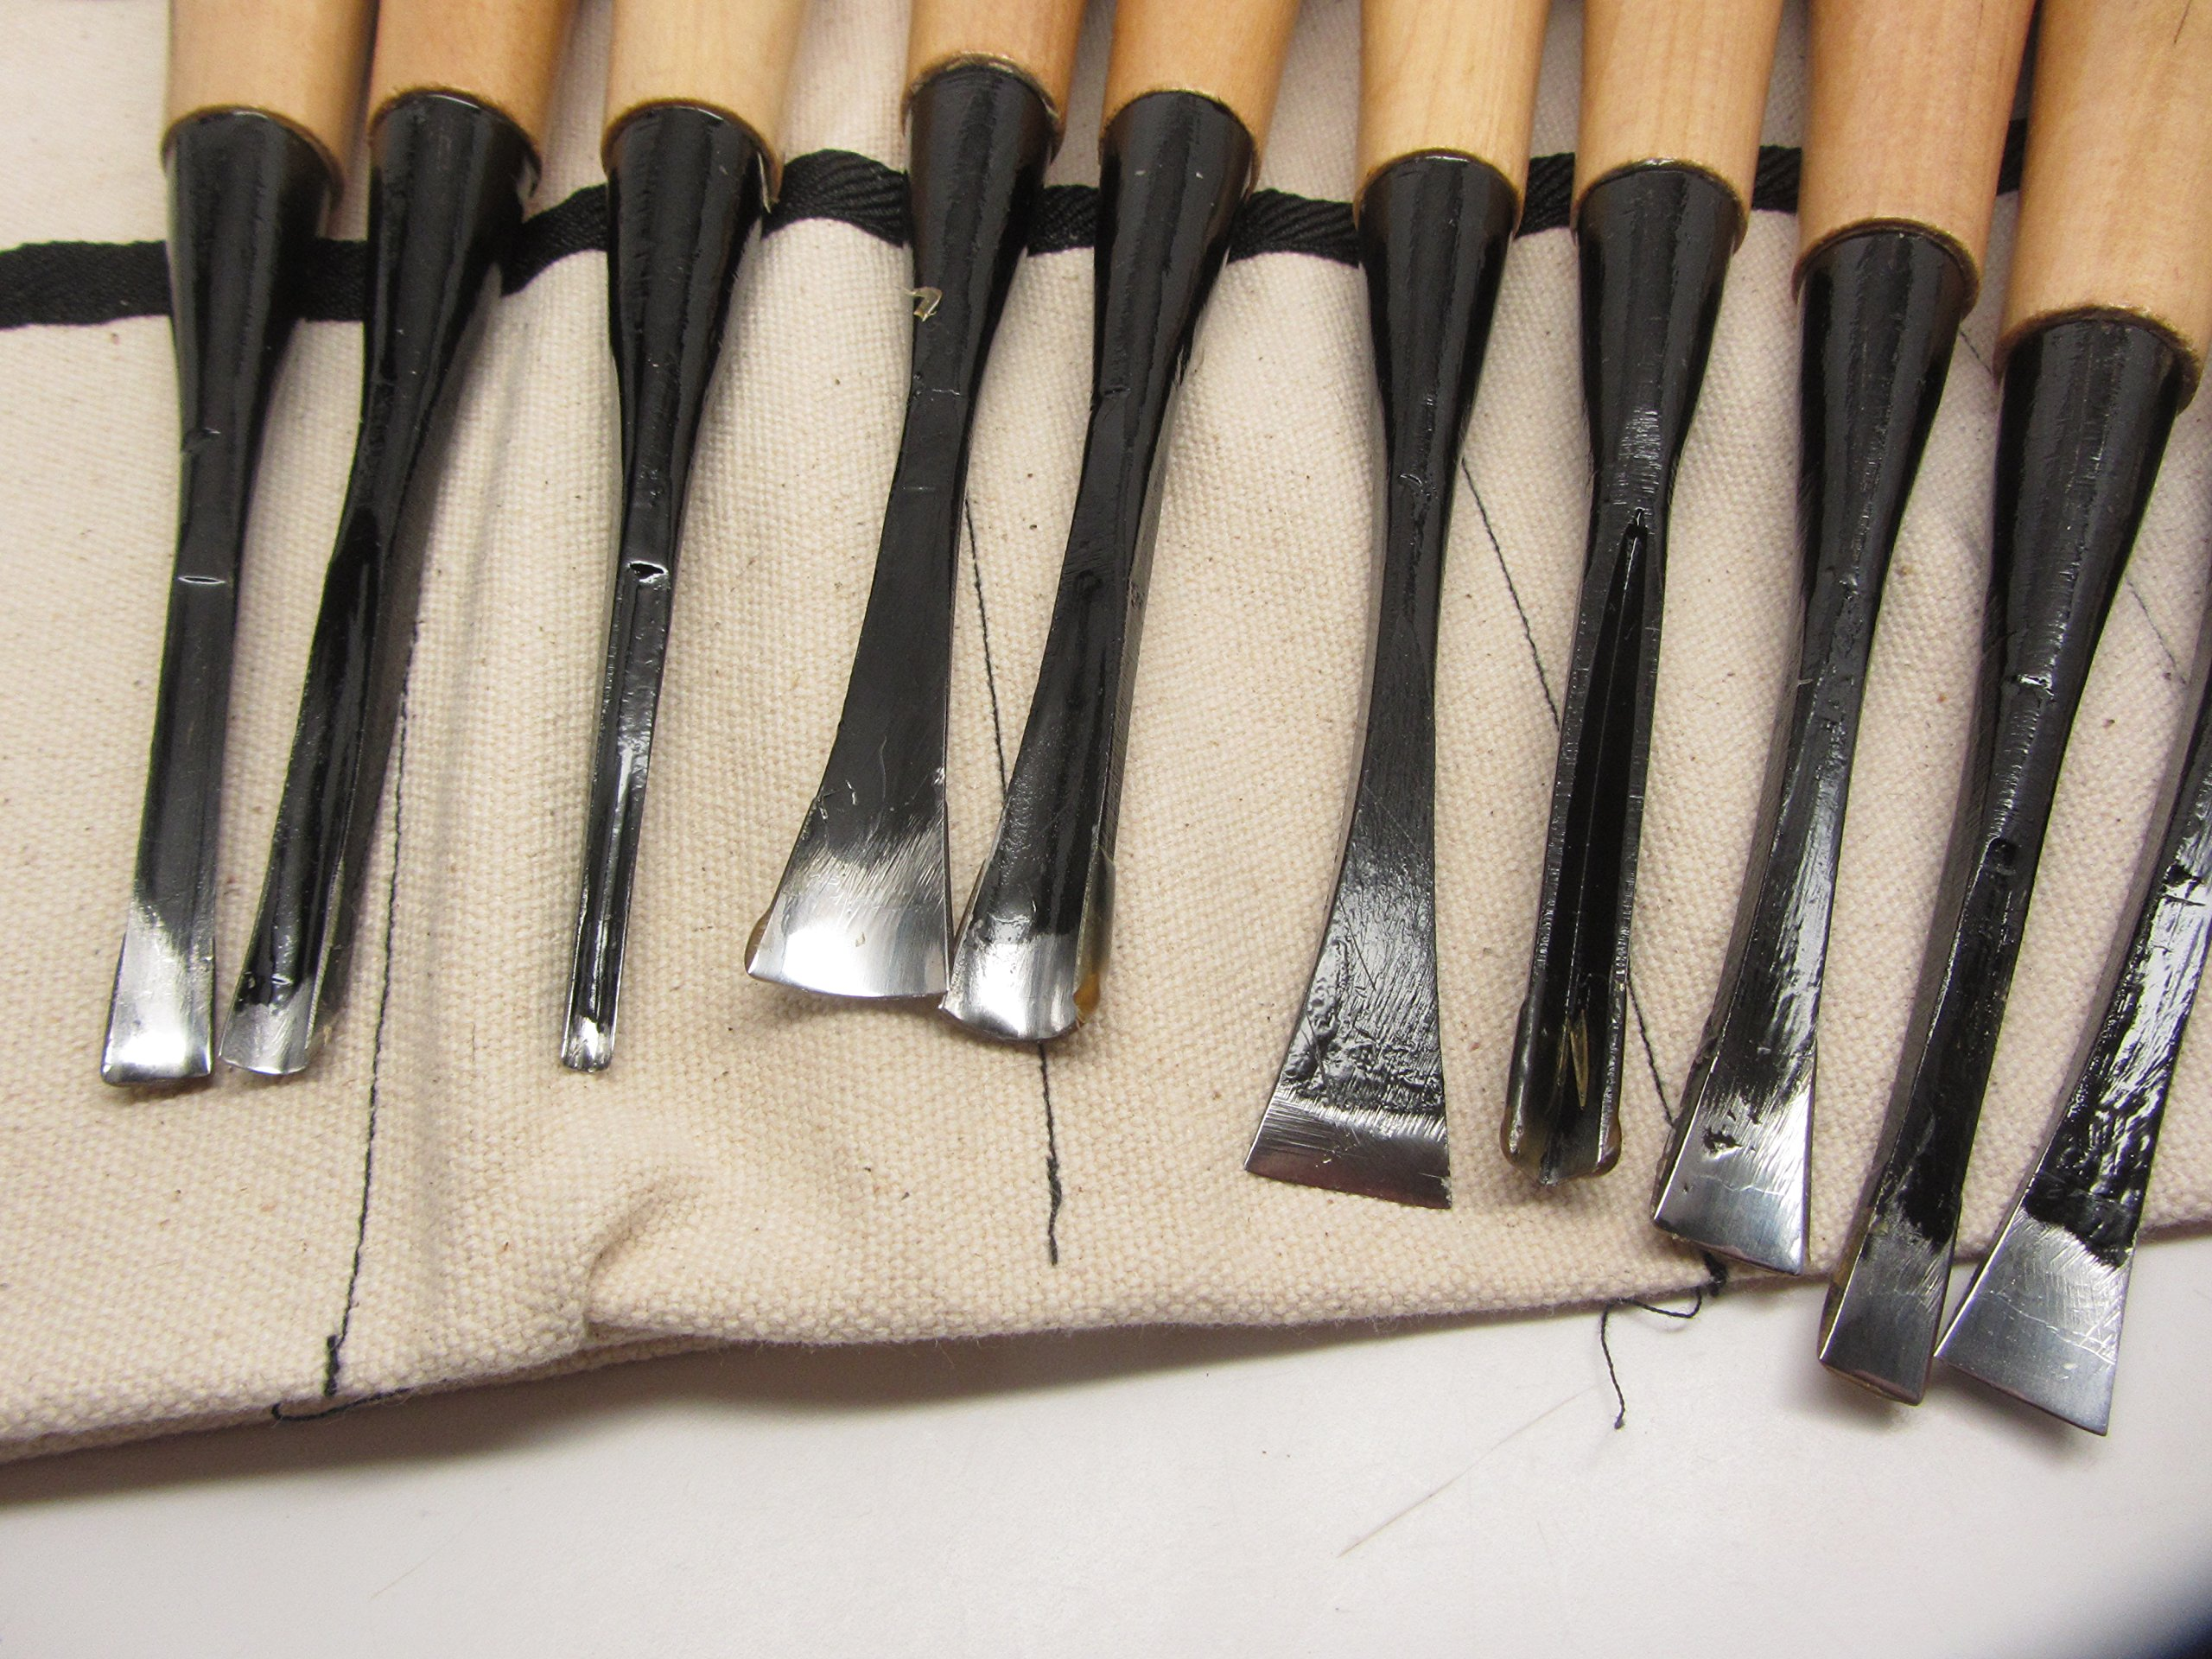 10pc Mastercarver Basic Wood Carving Tools Set w/Canvas Roll 401004 by UJ Ramelson Co